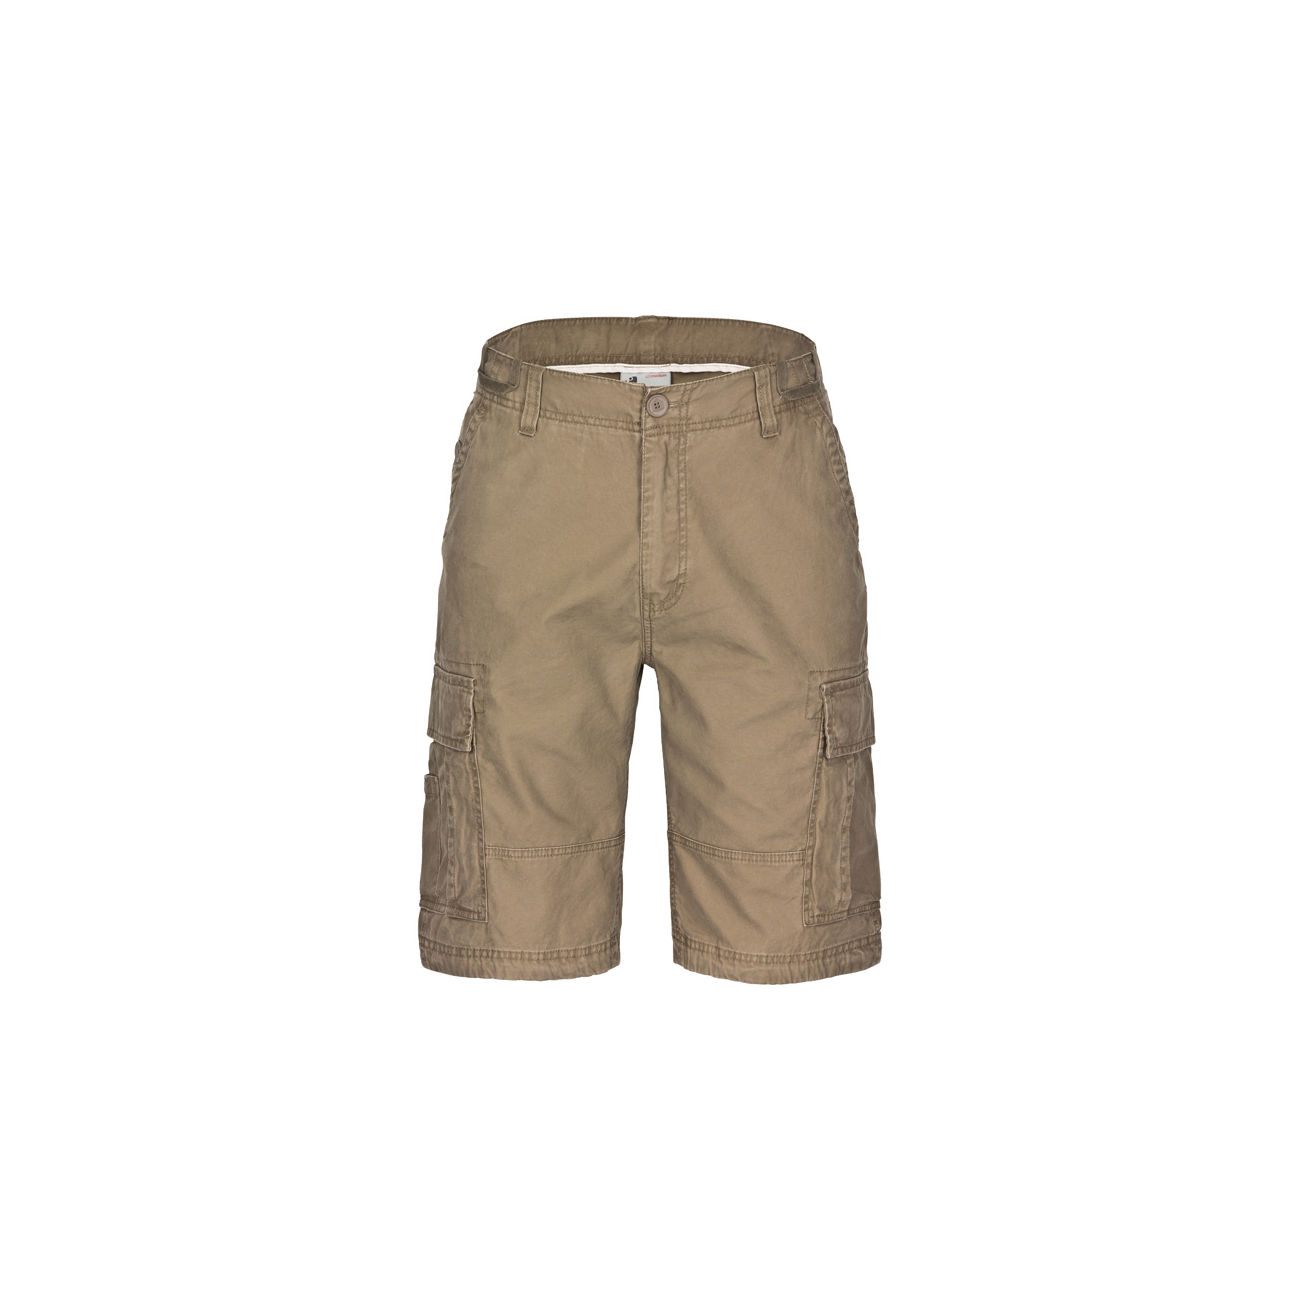 Vintage Industries Batten Shorts dark khaki 0